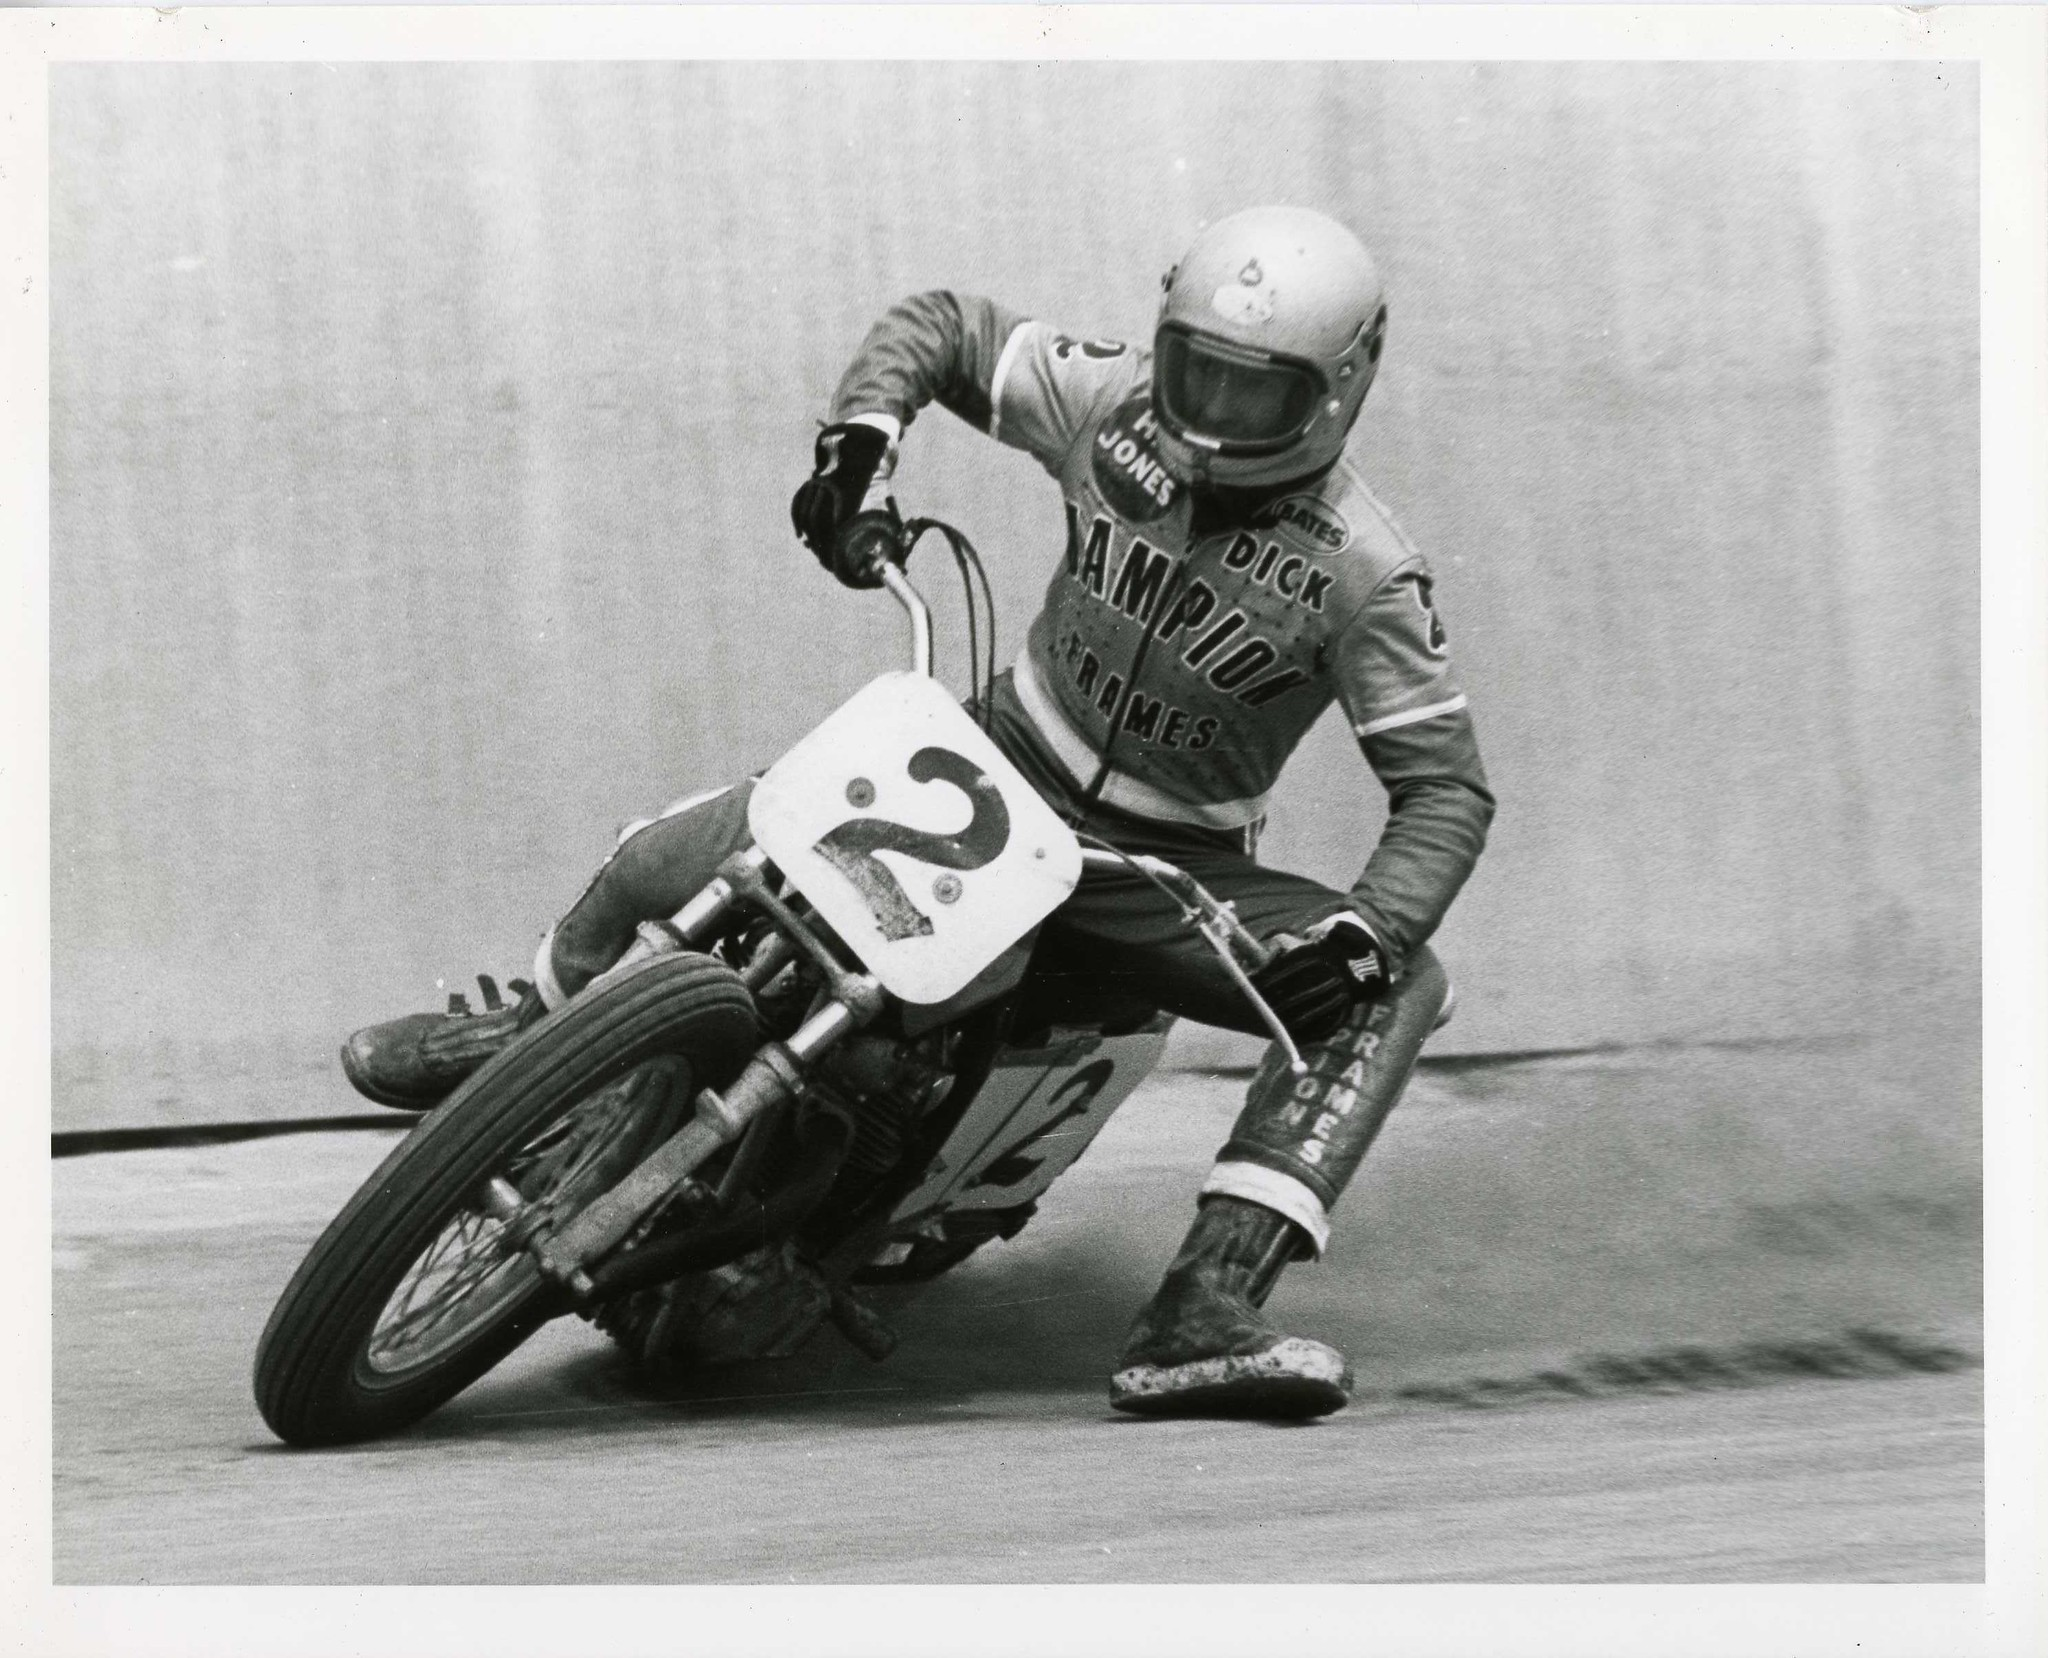 210428 AMA Motorcycle Hall of Famer and Racing Legend Dick Mann Passes (3)